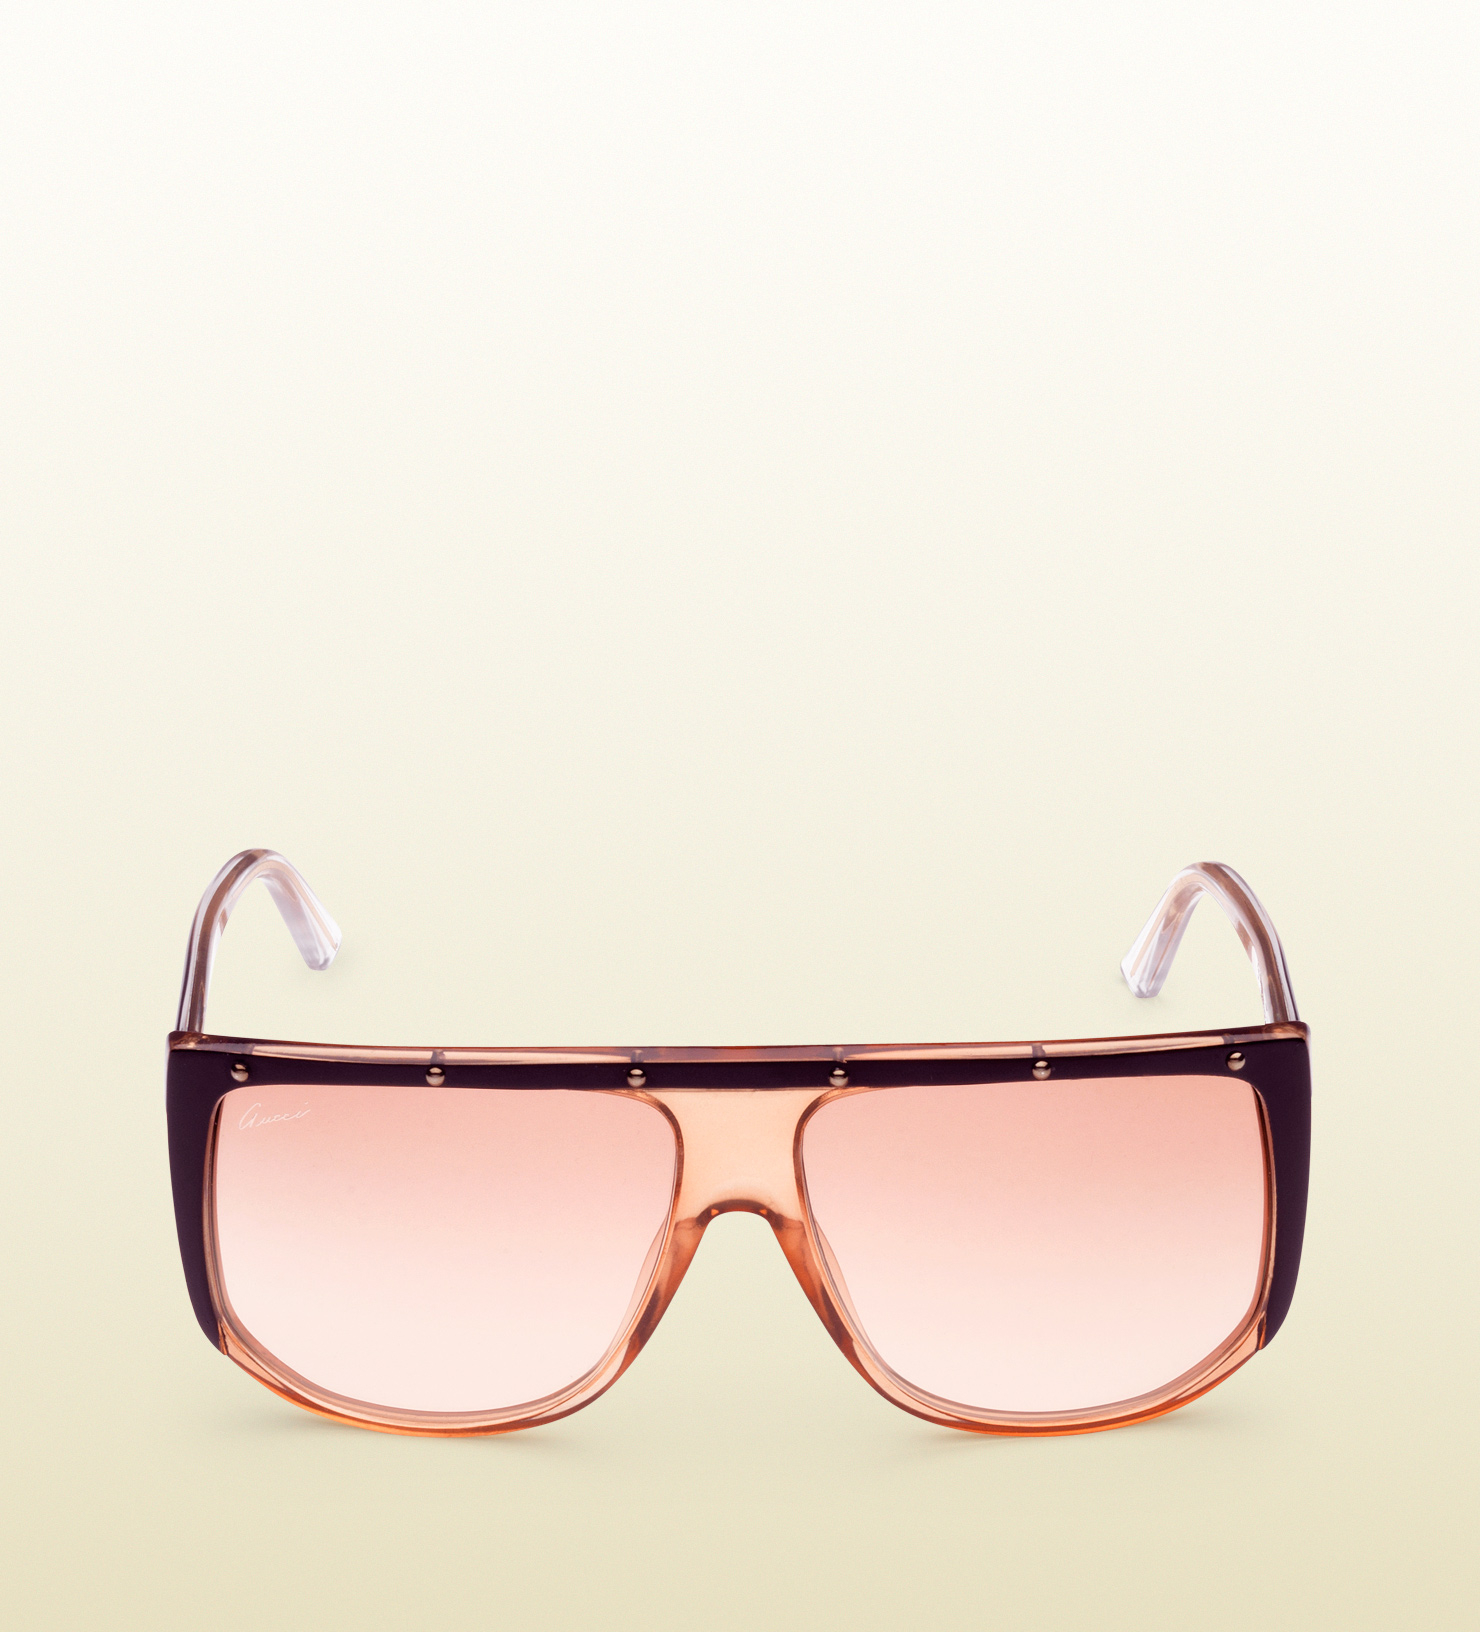 08bc29dba1a Lyst - Gucci Large Shaded Mask Sunglasses in Orange